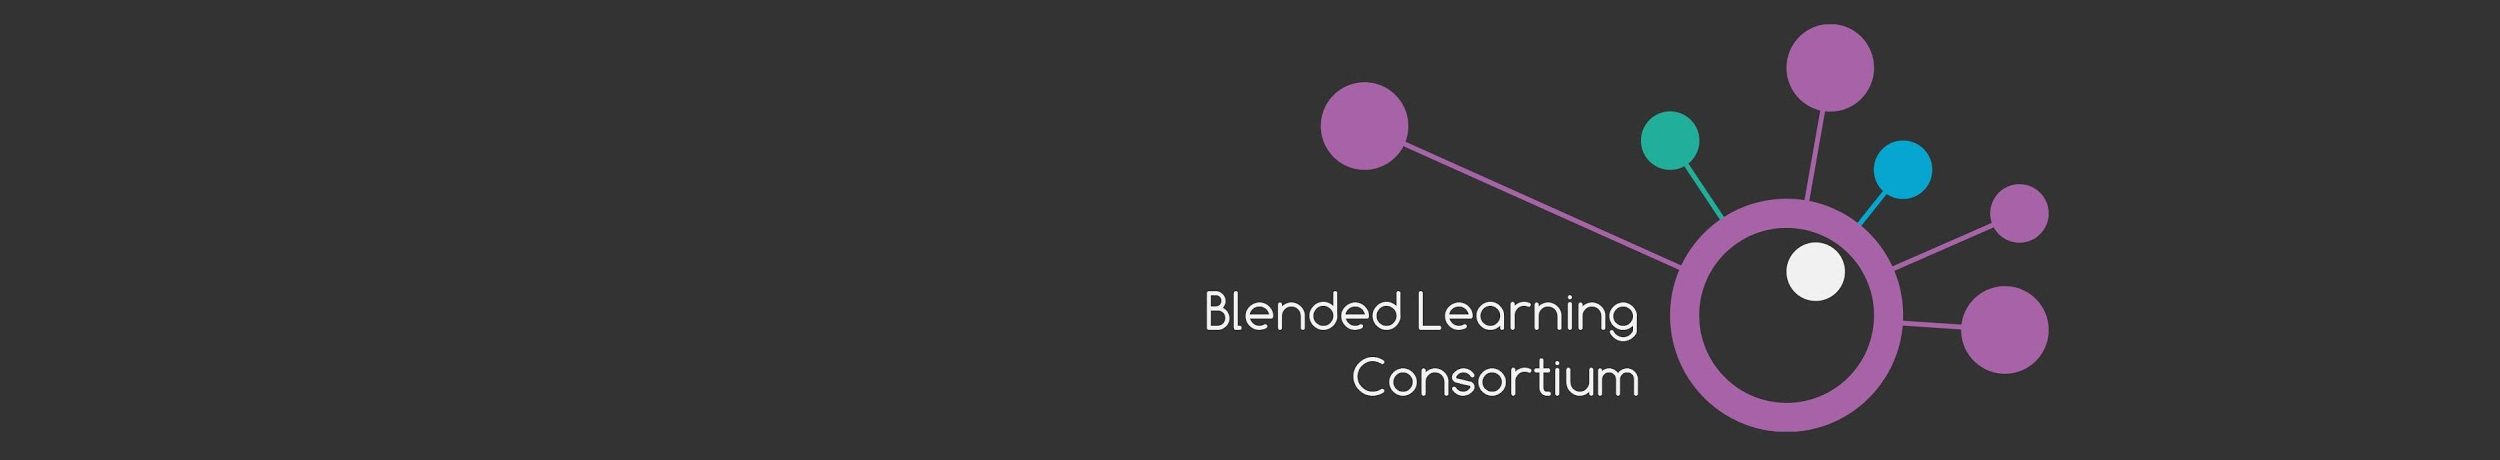 Course Image Blended Learning Consortium - Interactive Resources